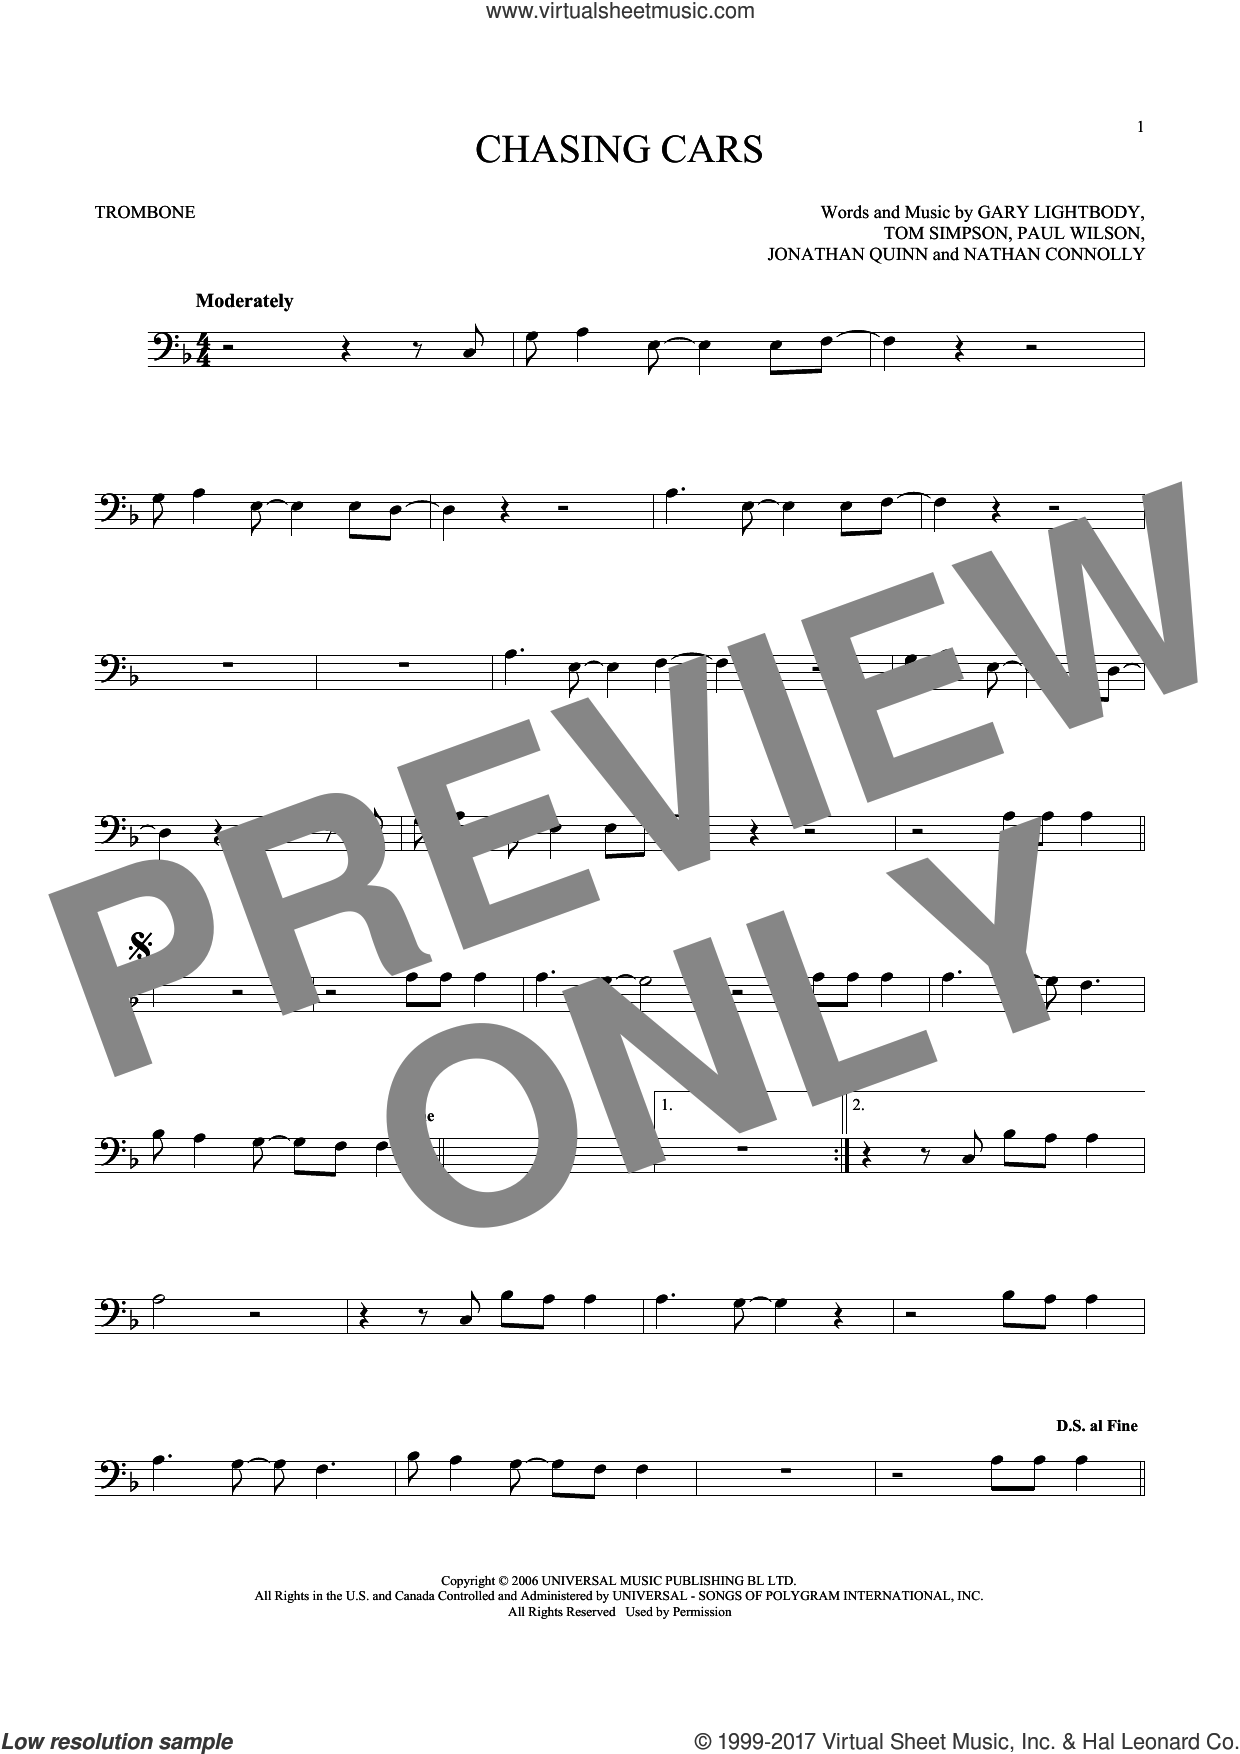 Chasing Cars sheet music for trombone solo by Snow Patrol, Gary Lightbody, Jonathan Quinn, Nathan Connolly, Paul Wilson and Tom Simpson, intermediate skill level